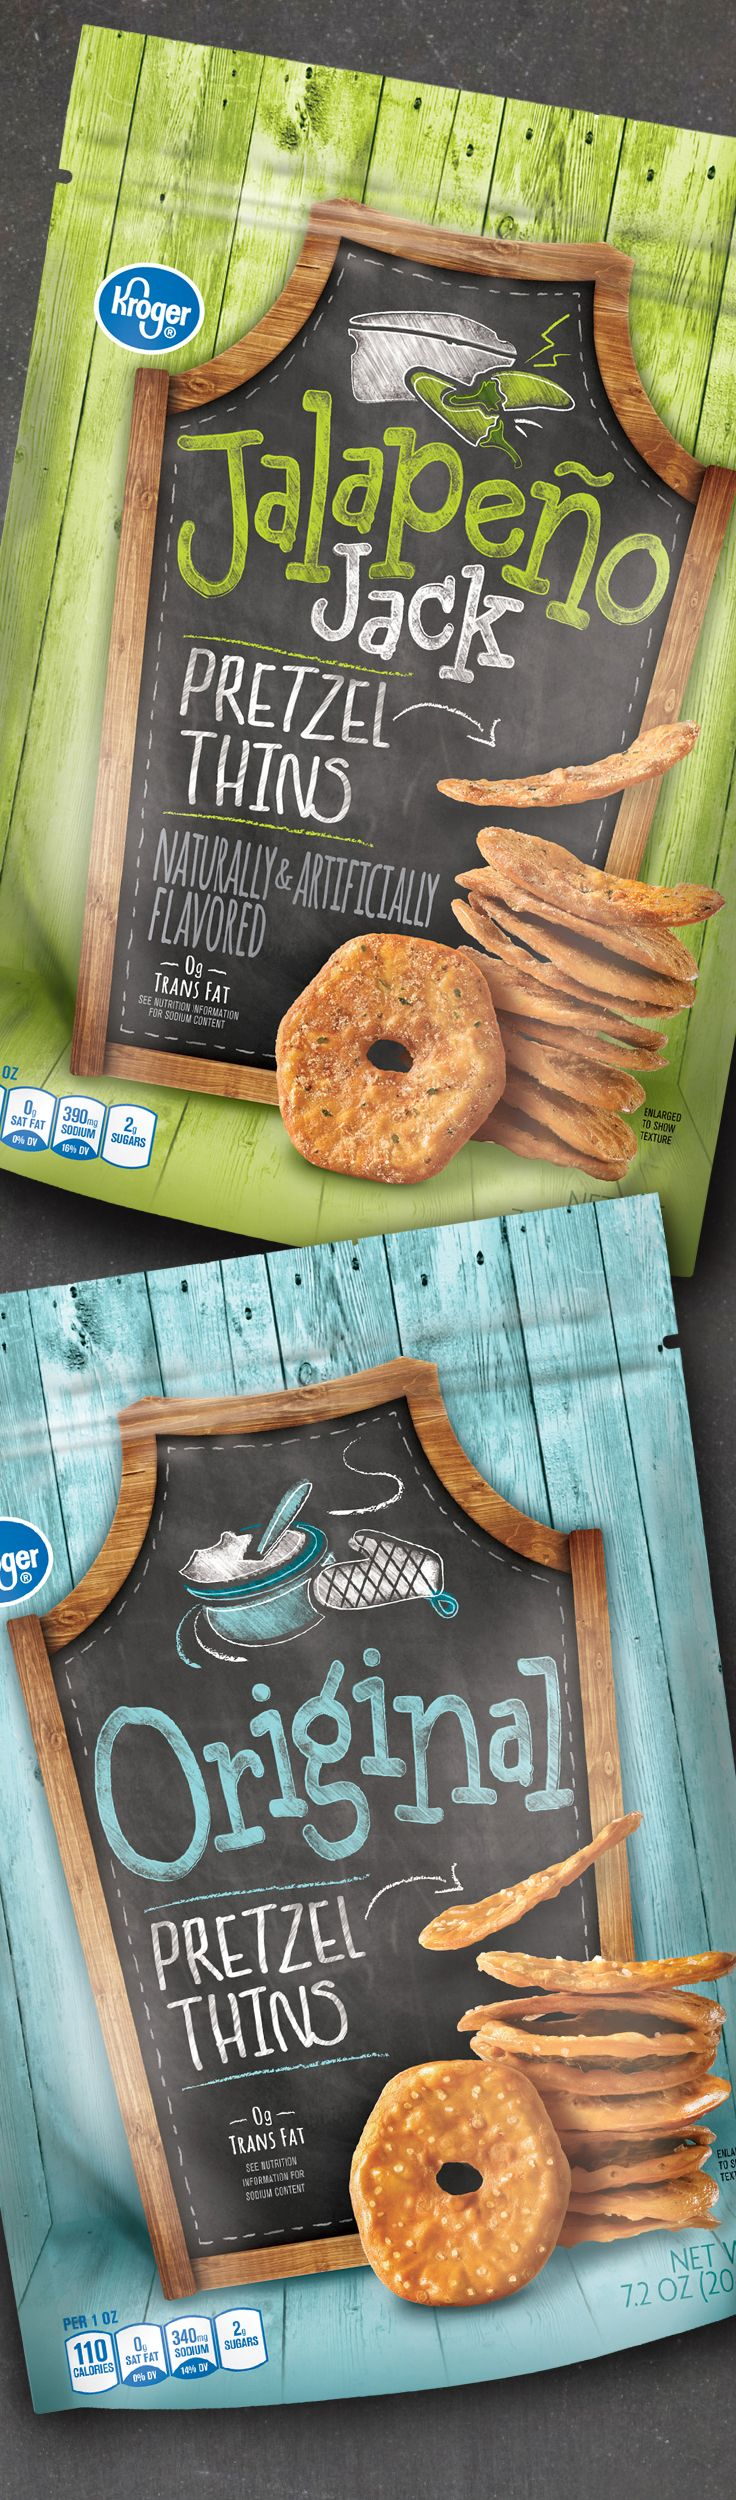 Pretzel Thins - Packaging designed by Design Resource Center http://www.drcchicago.com/